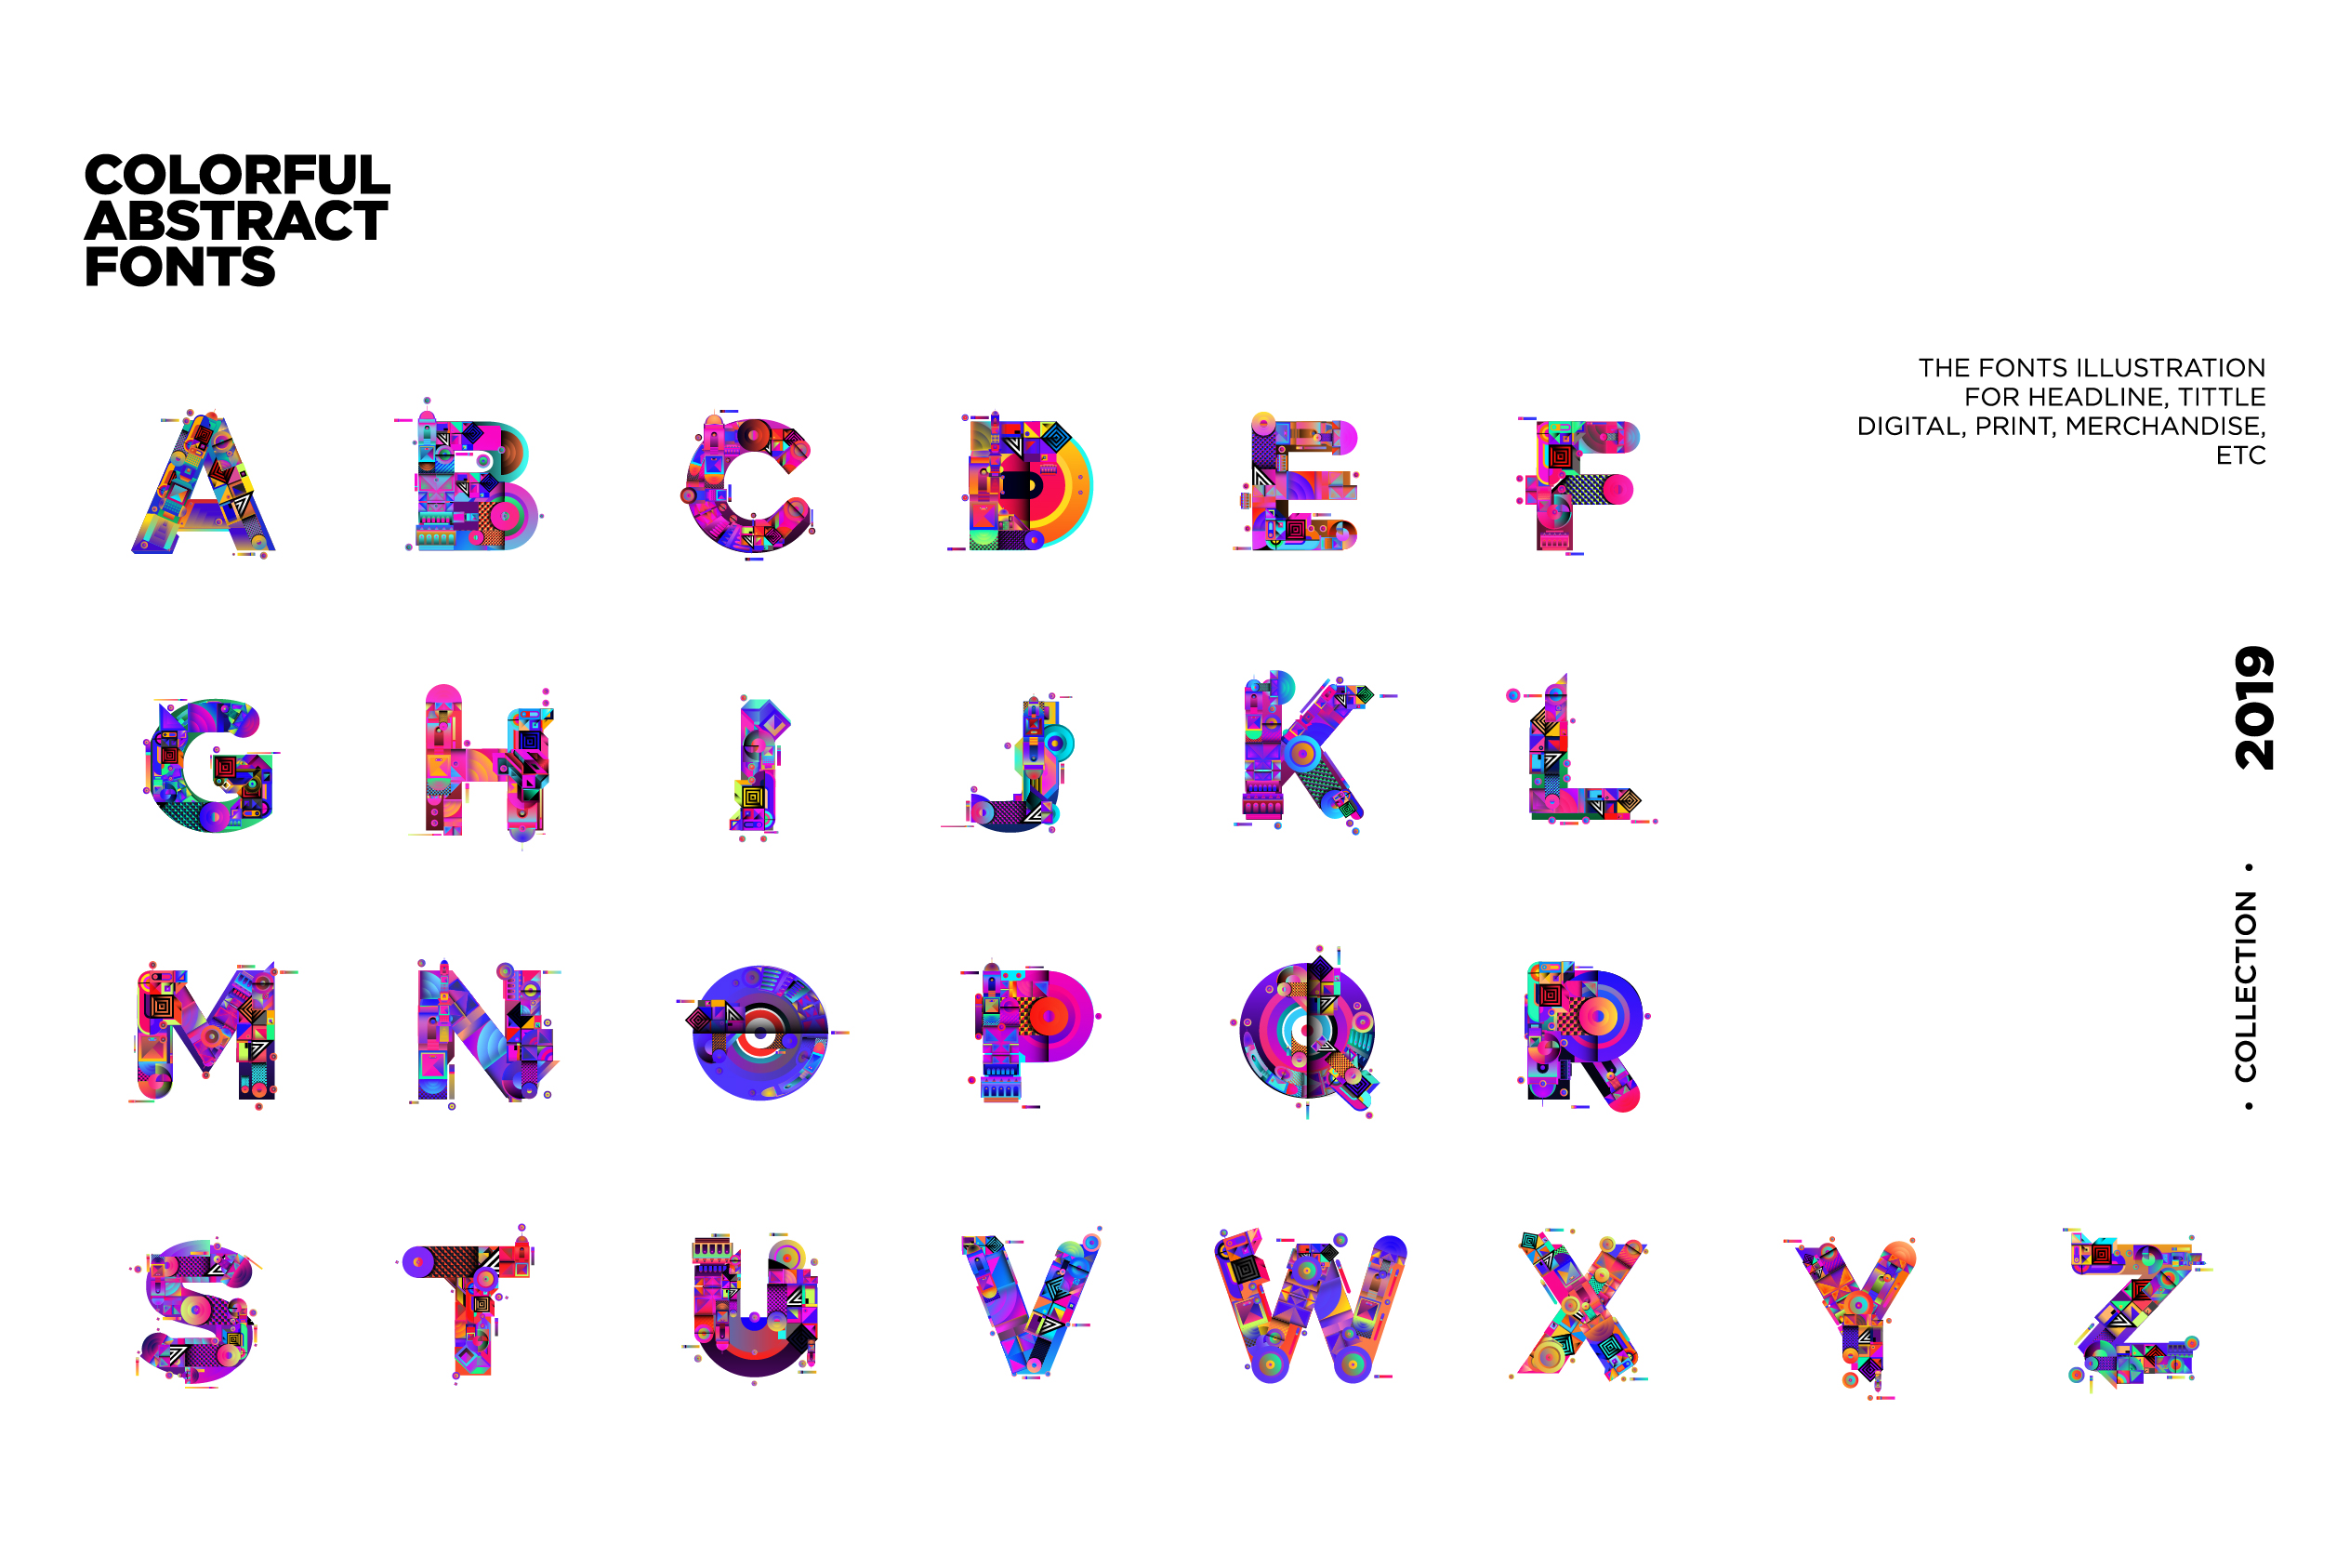 Colorful Alphabets Font Illustration example image 5